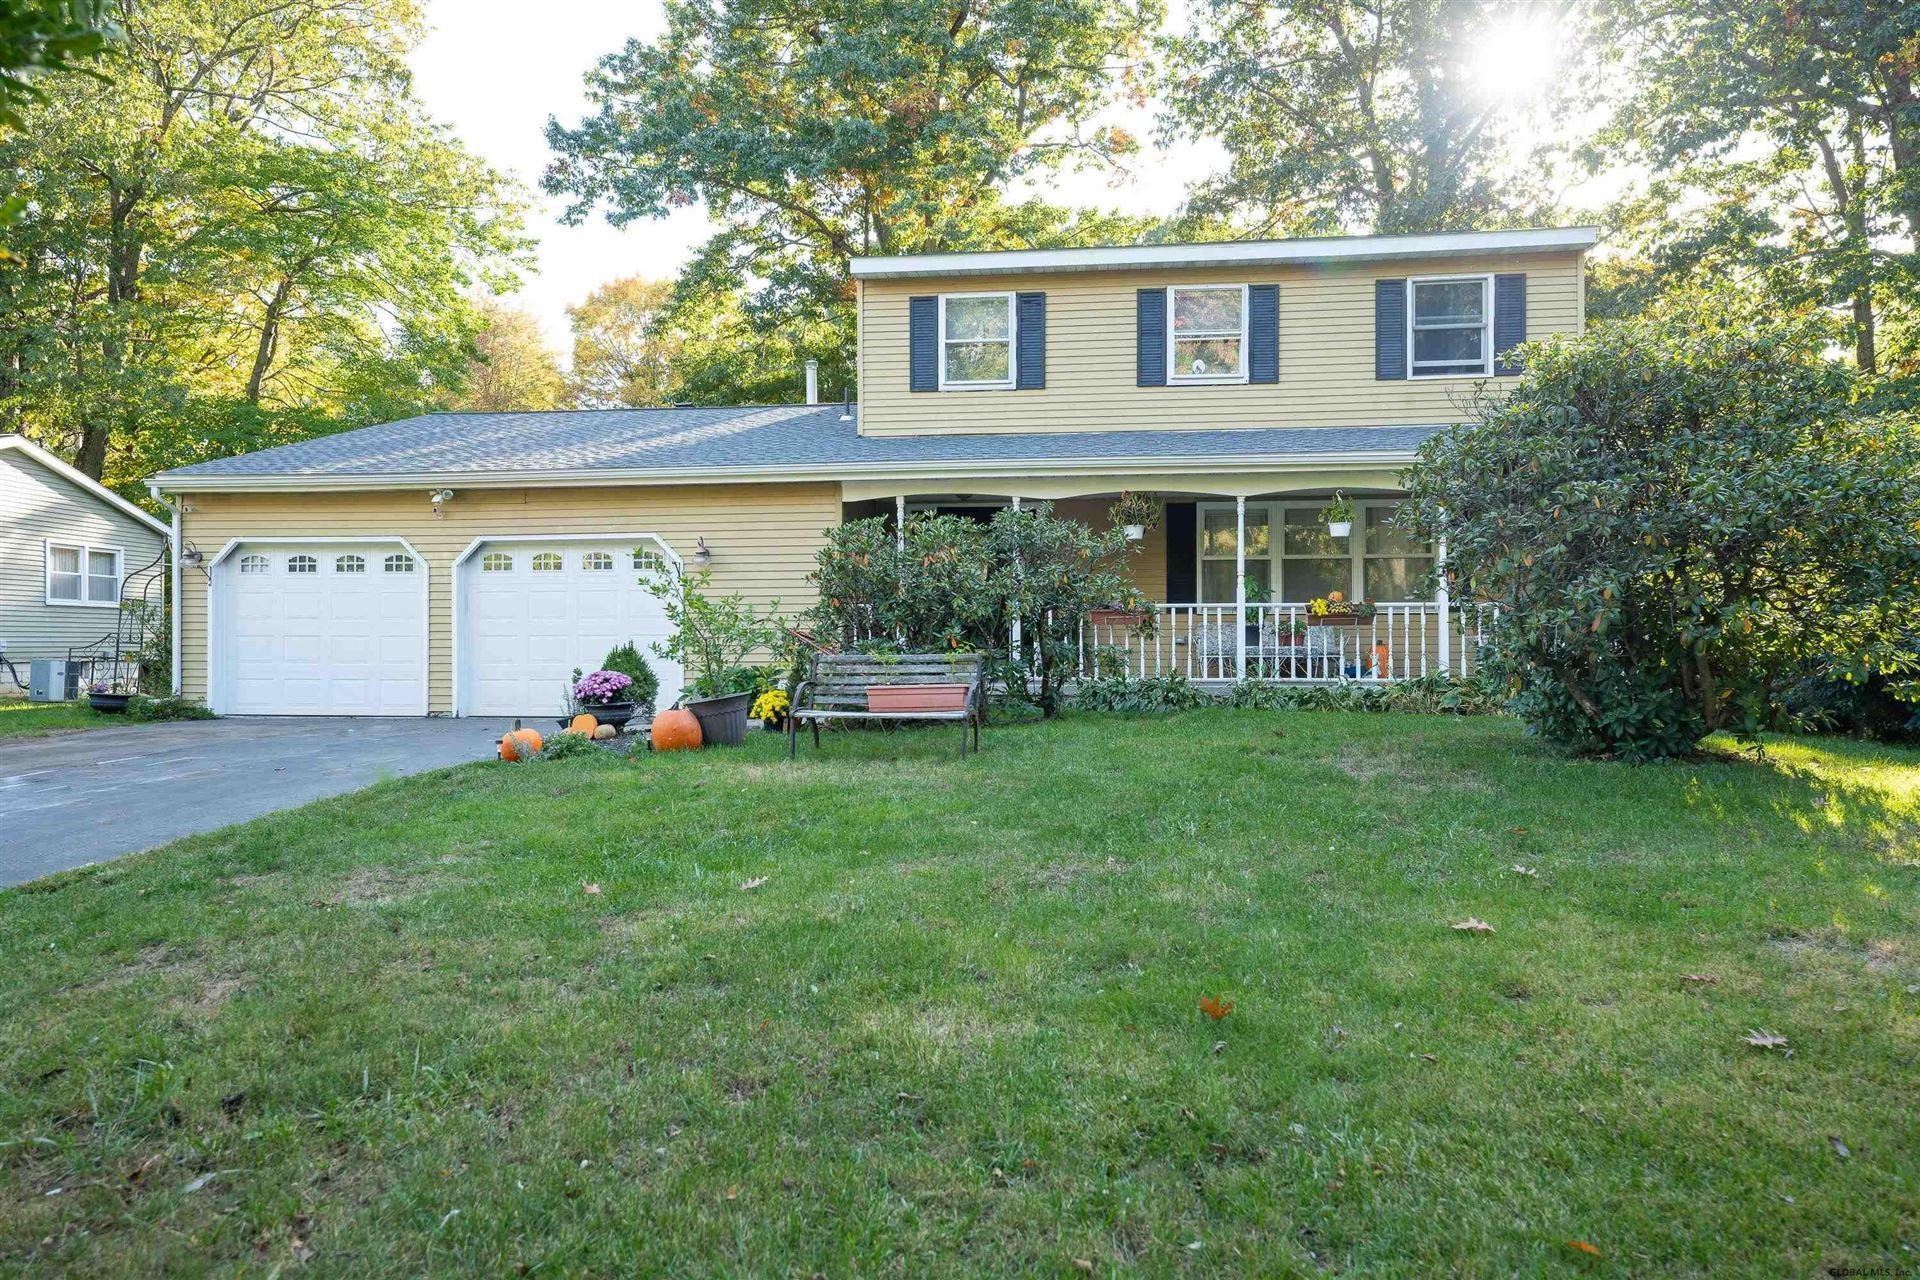 39 WILSHIRE DR, Colonie, NY 12205 - #: 202130622